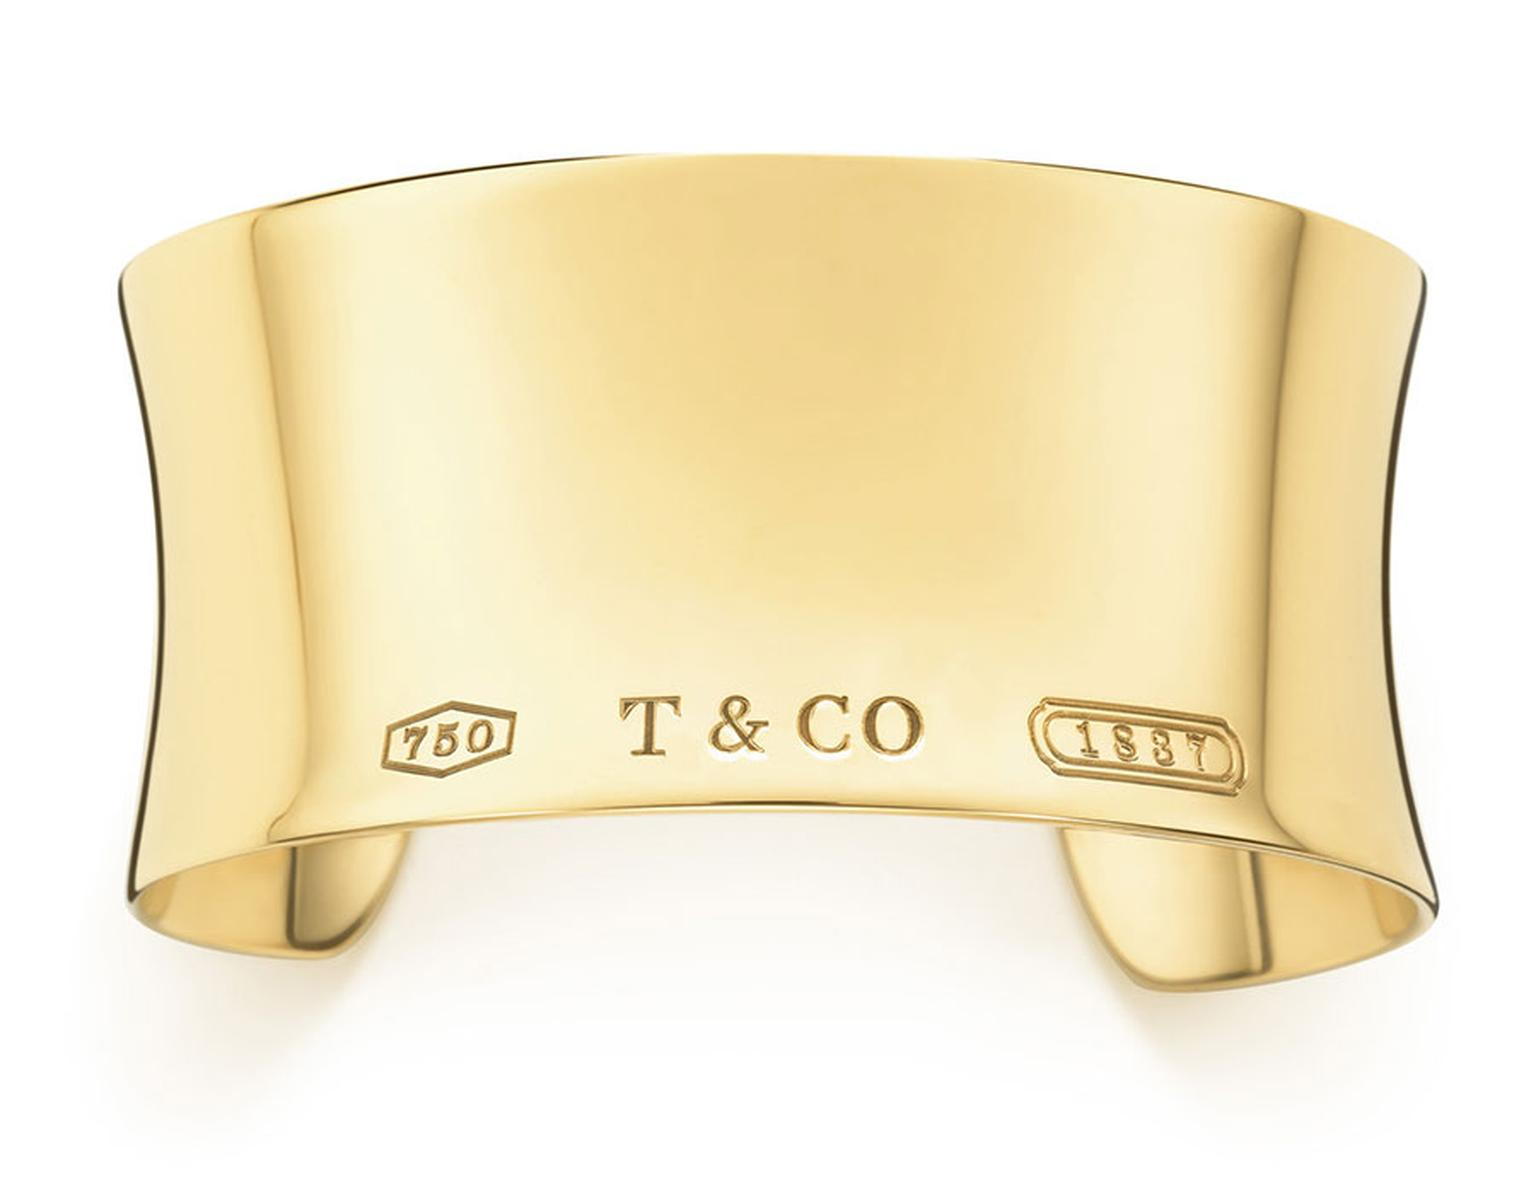 Tiffany-1837-Gold-Bangle.jpg